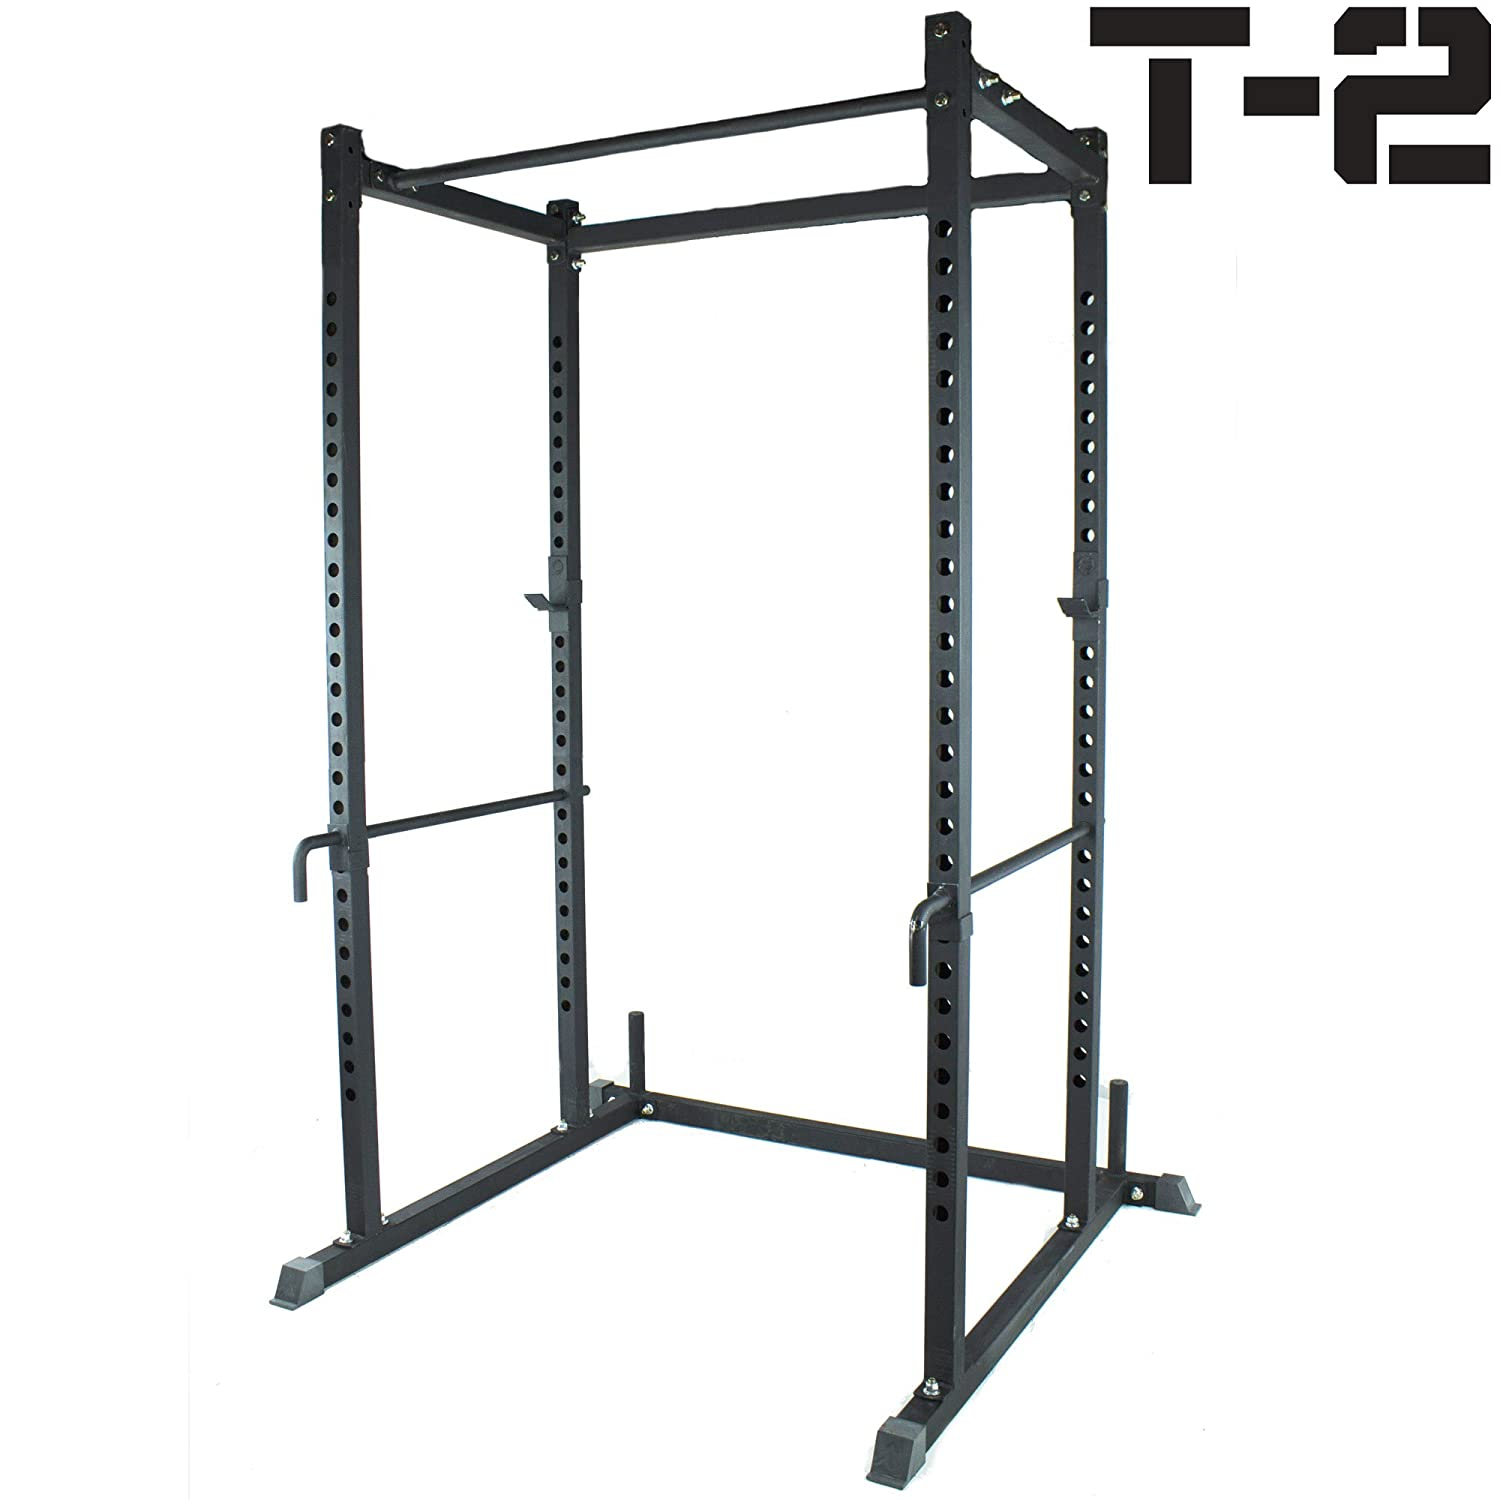 The Best Power Rack 3